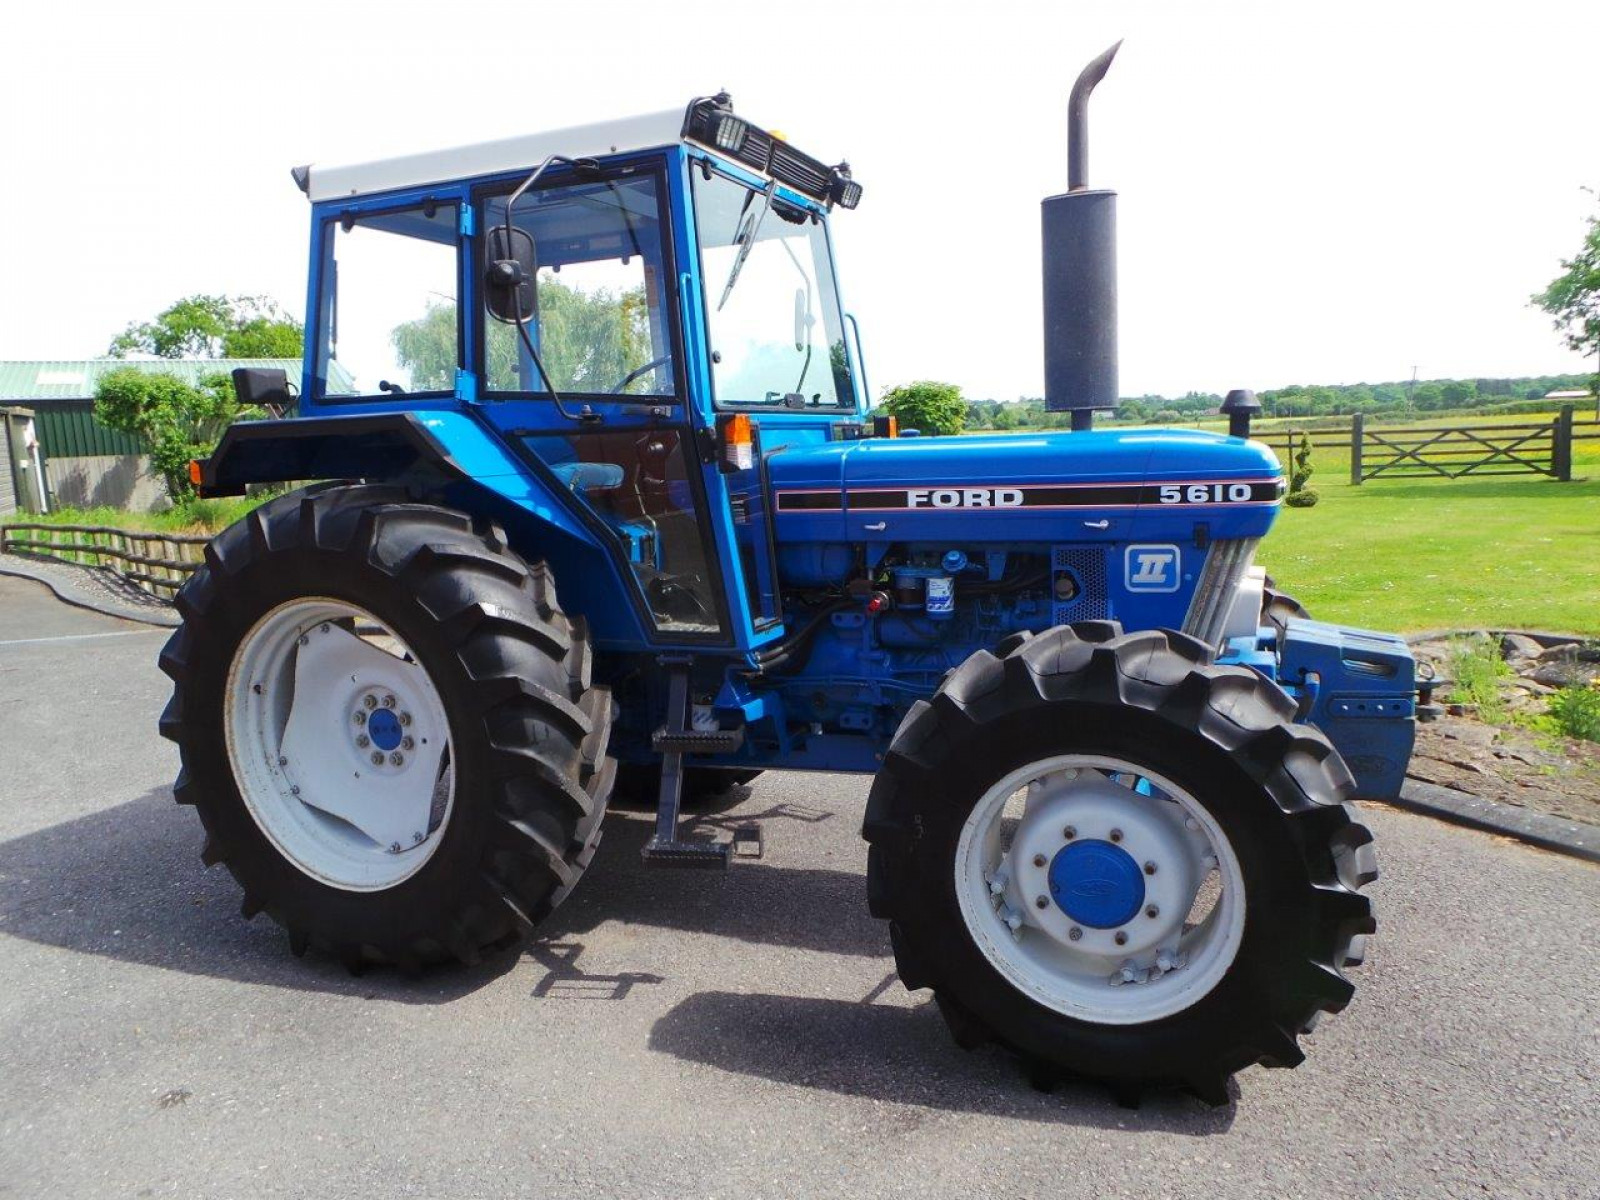 Used Tractors For Sale >> Robert Wraight Ltd Trading Worldwide In Tractors Parts